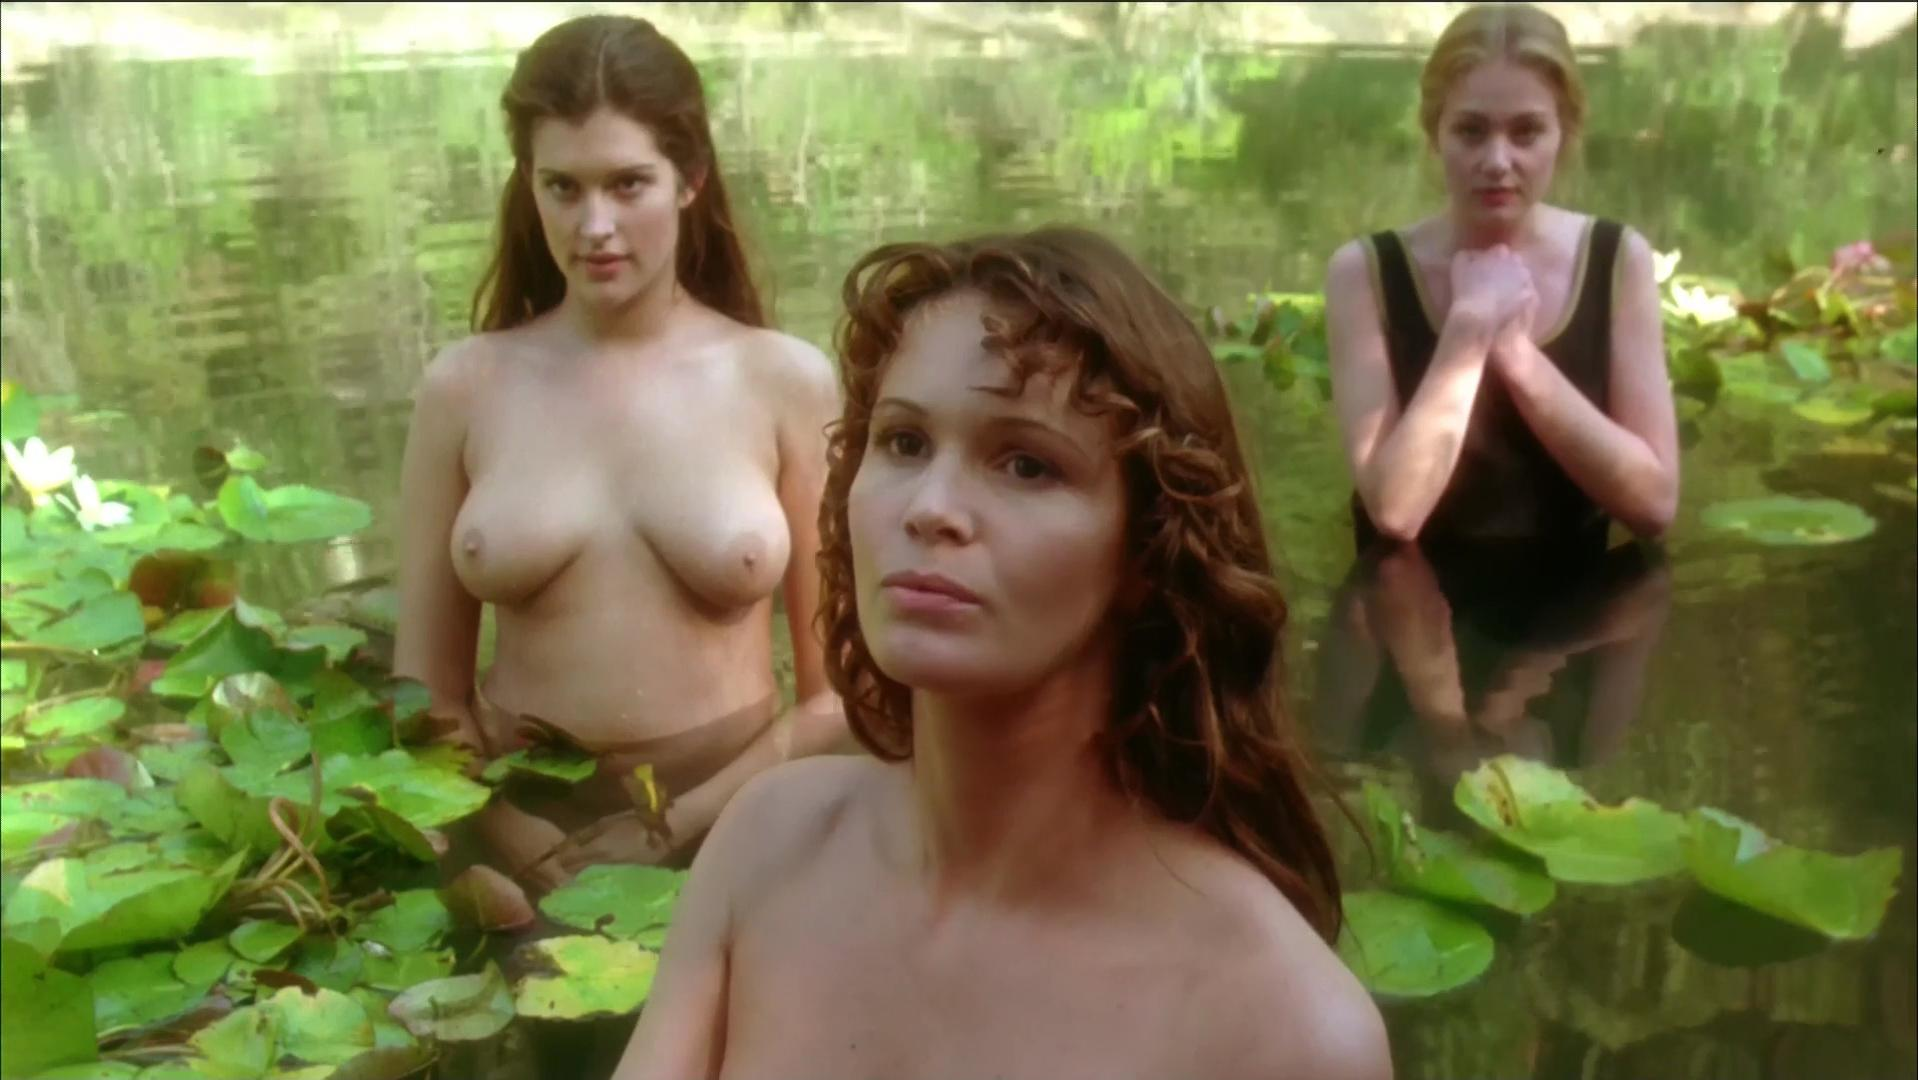 Matchless topic Tara fitzgerald hot nude pics apologise